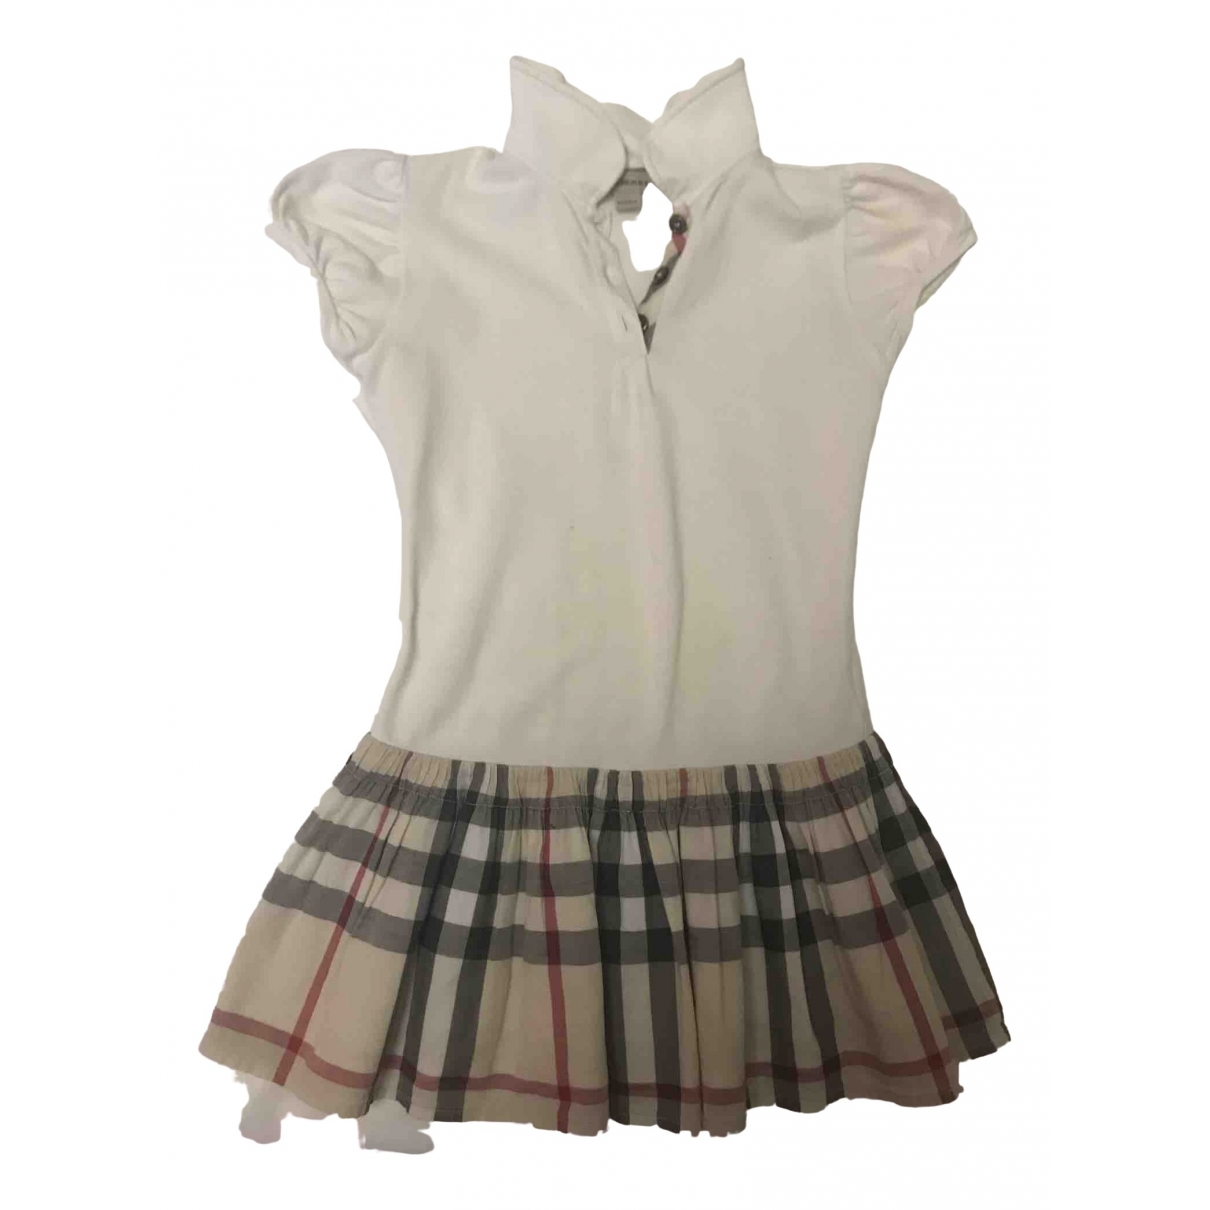 Burberry \N White Cotton dress for Kids 4 years - up to 102cm FR